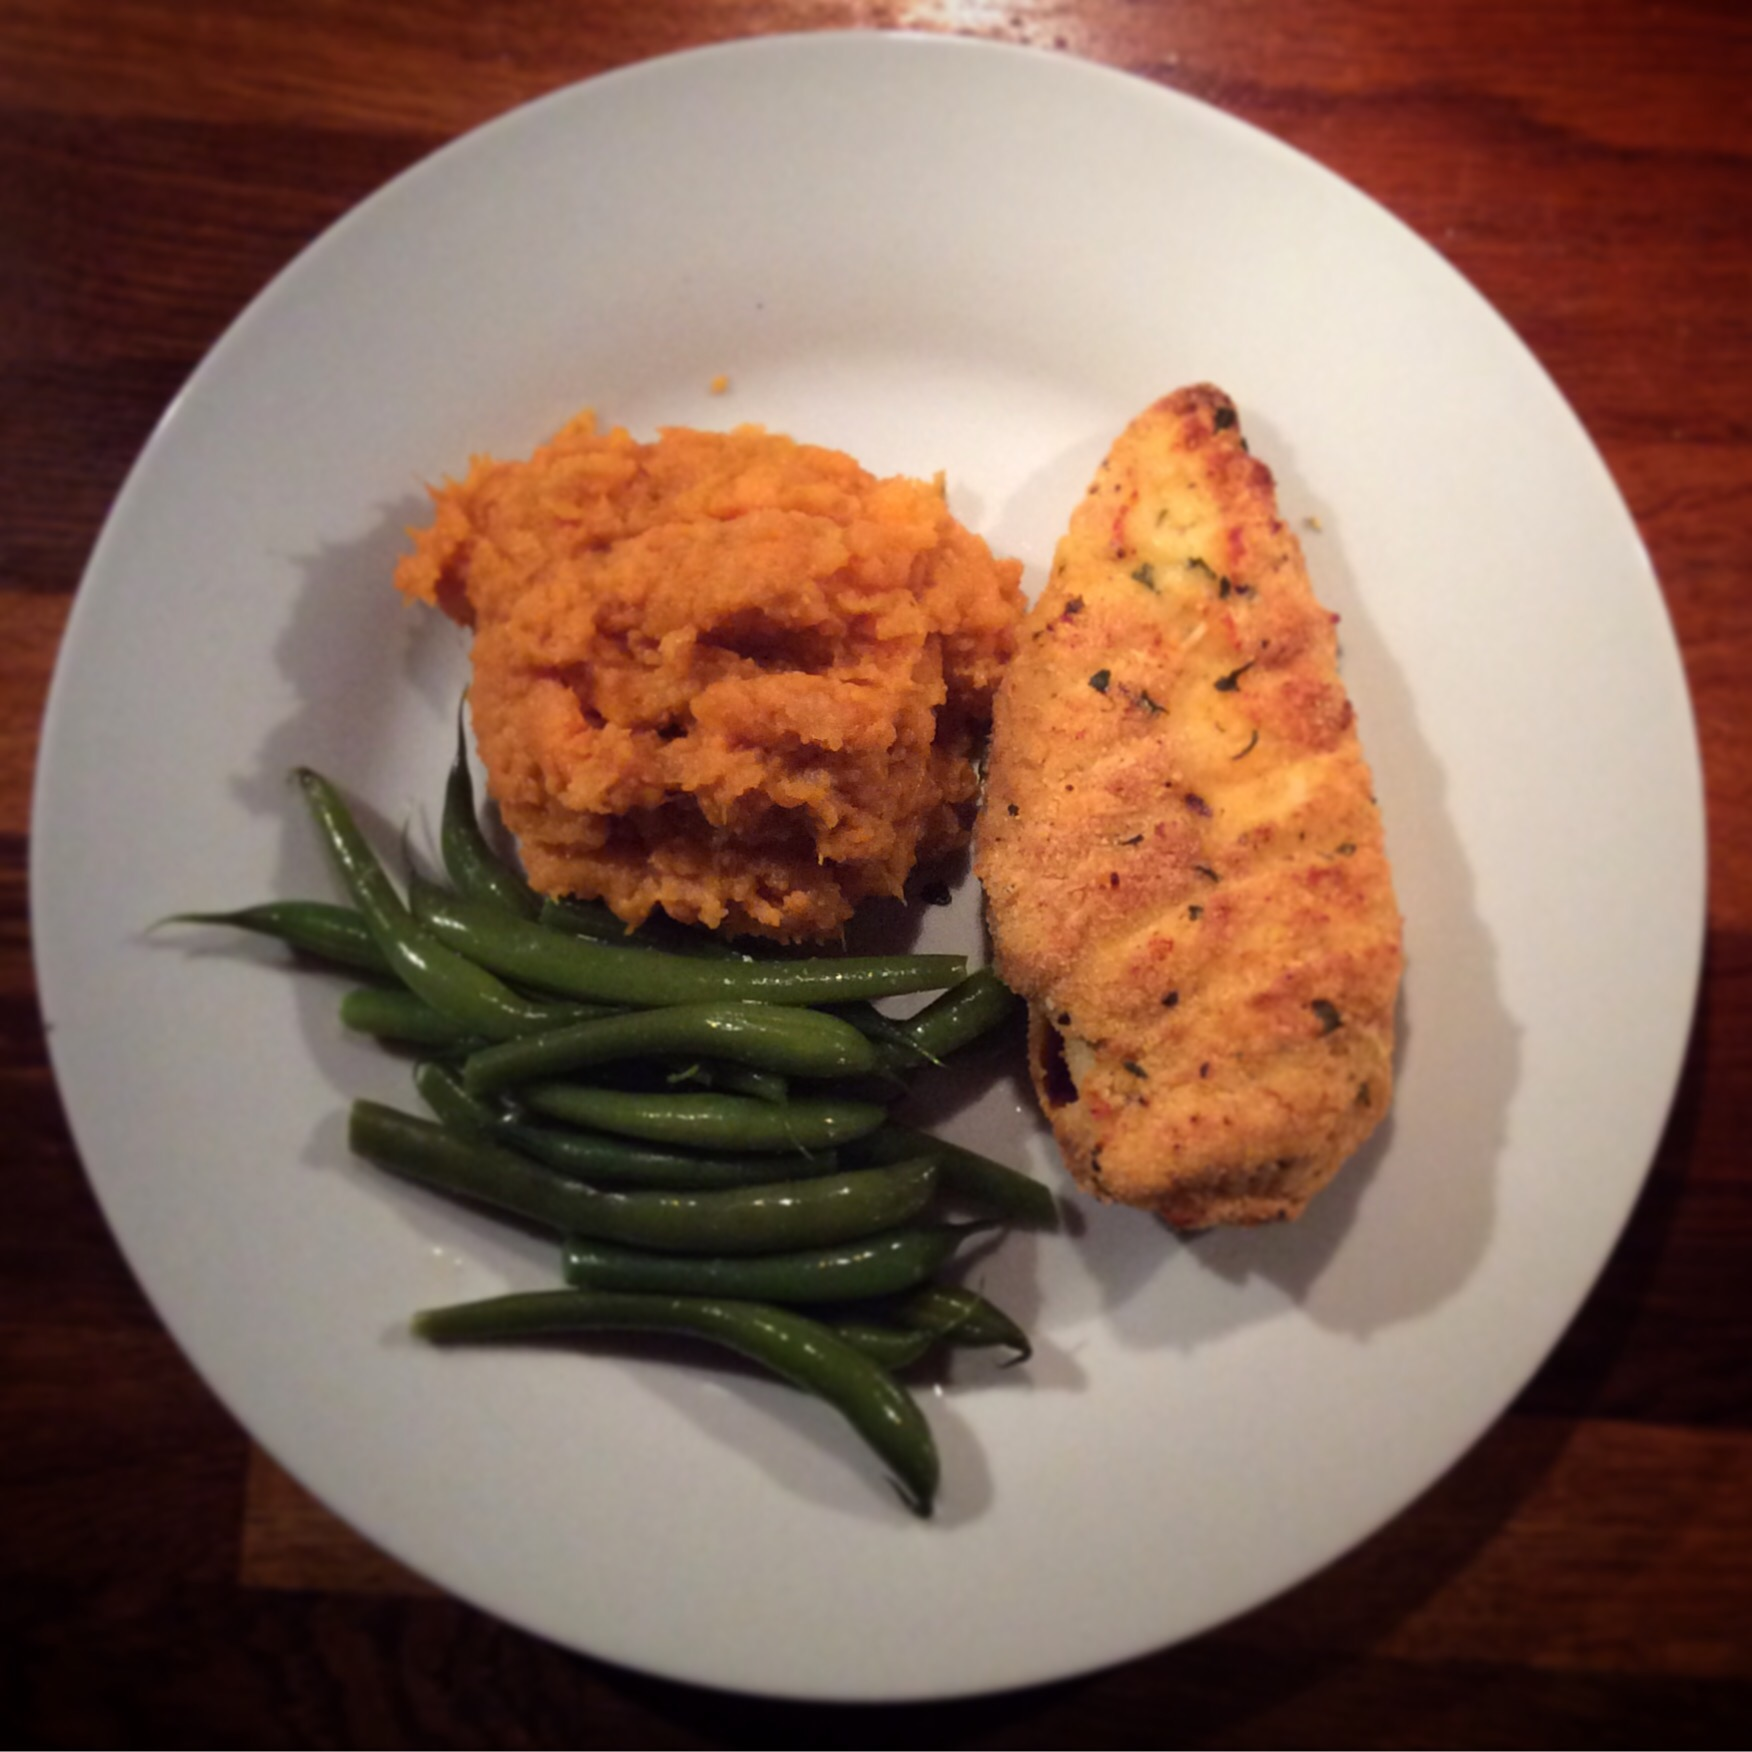 Polenta coated chicken  with  mashed sweet potato and green beans